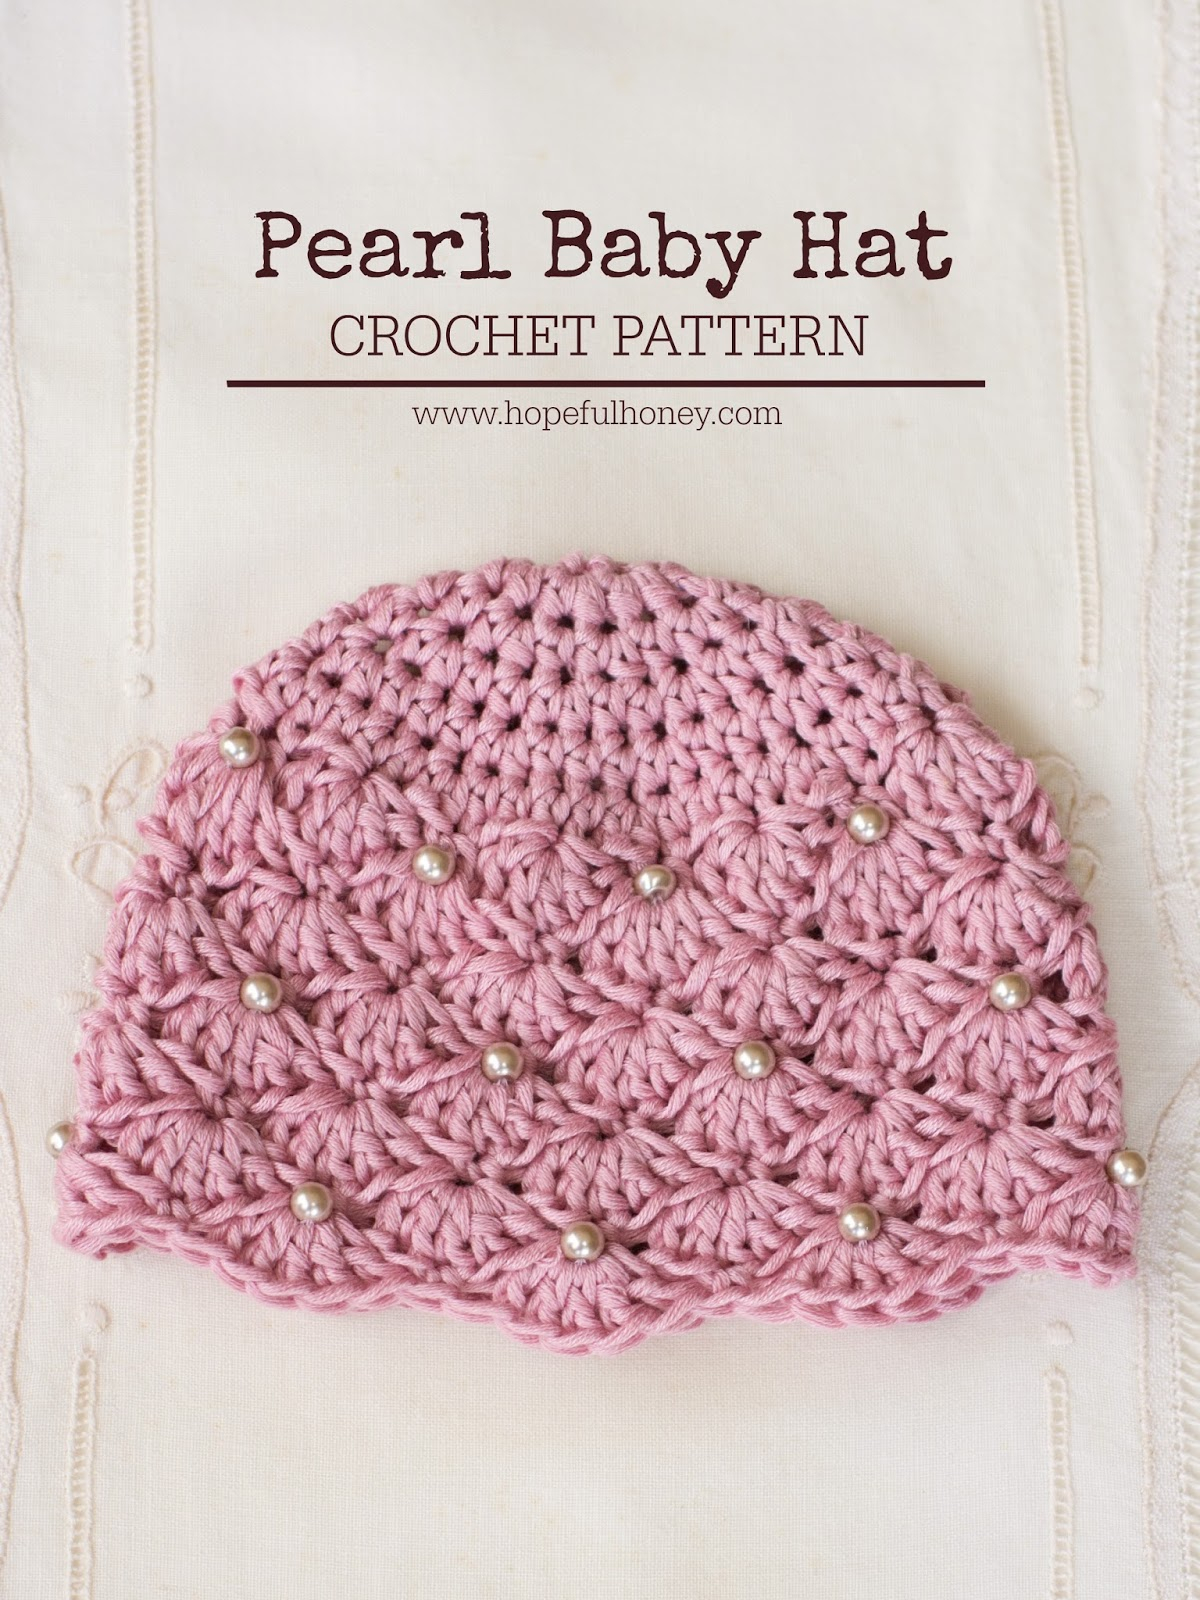 Crochet Patterns Free Free Crochet Vintage Patterns Vintage Pearl Ba Hat Free Crochet